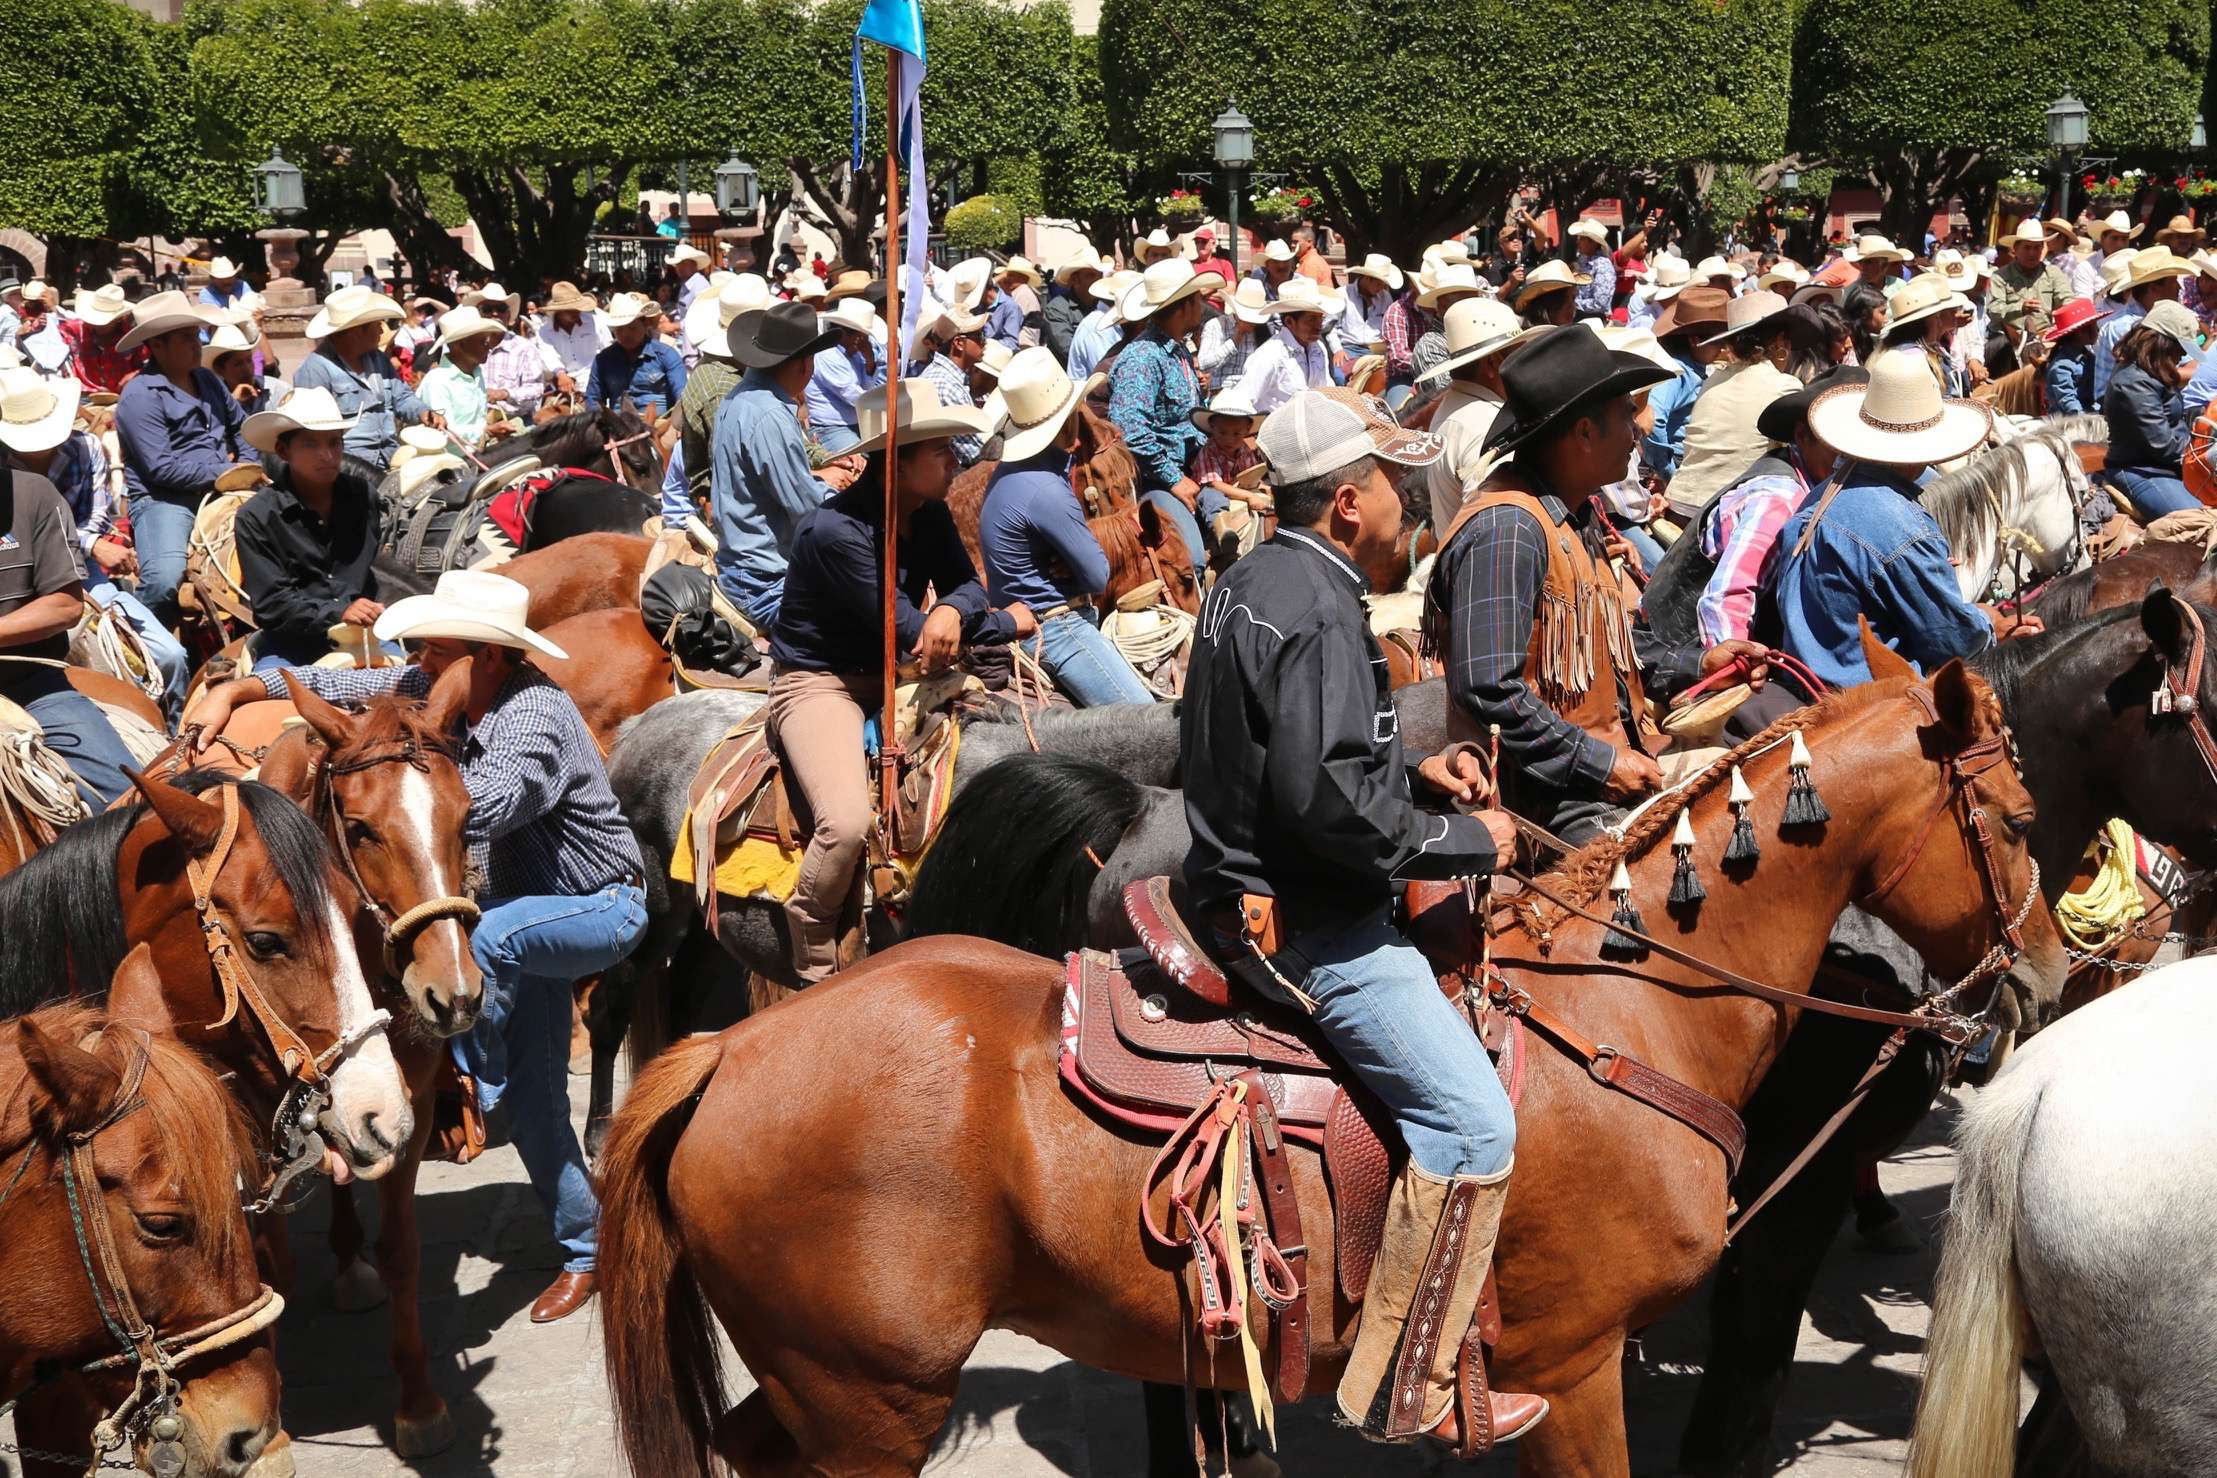 Hundreds of horse riders pack into the square and participate in a mass in front of the church.